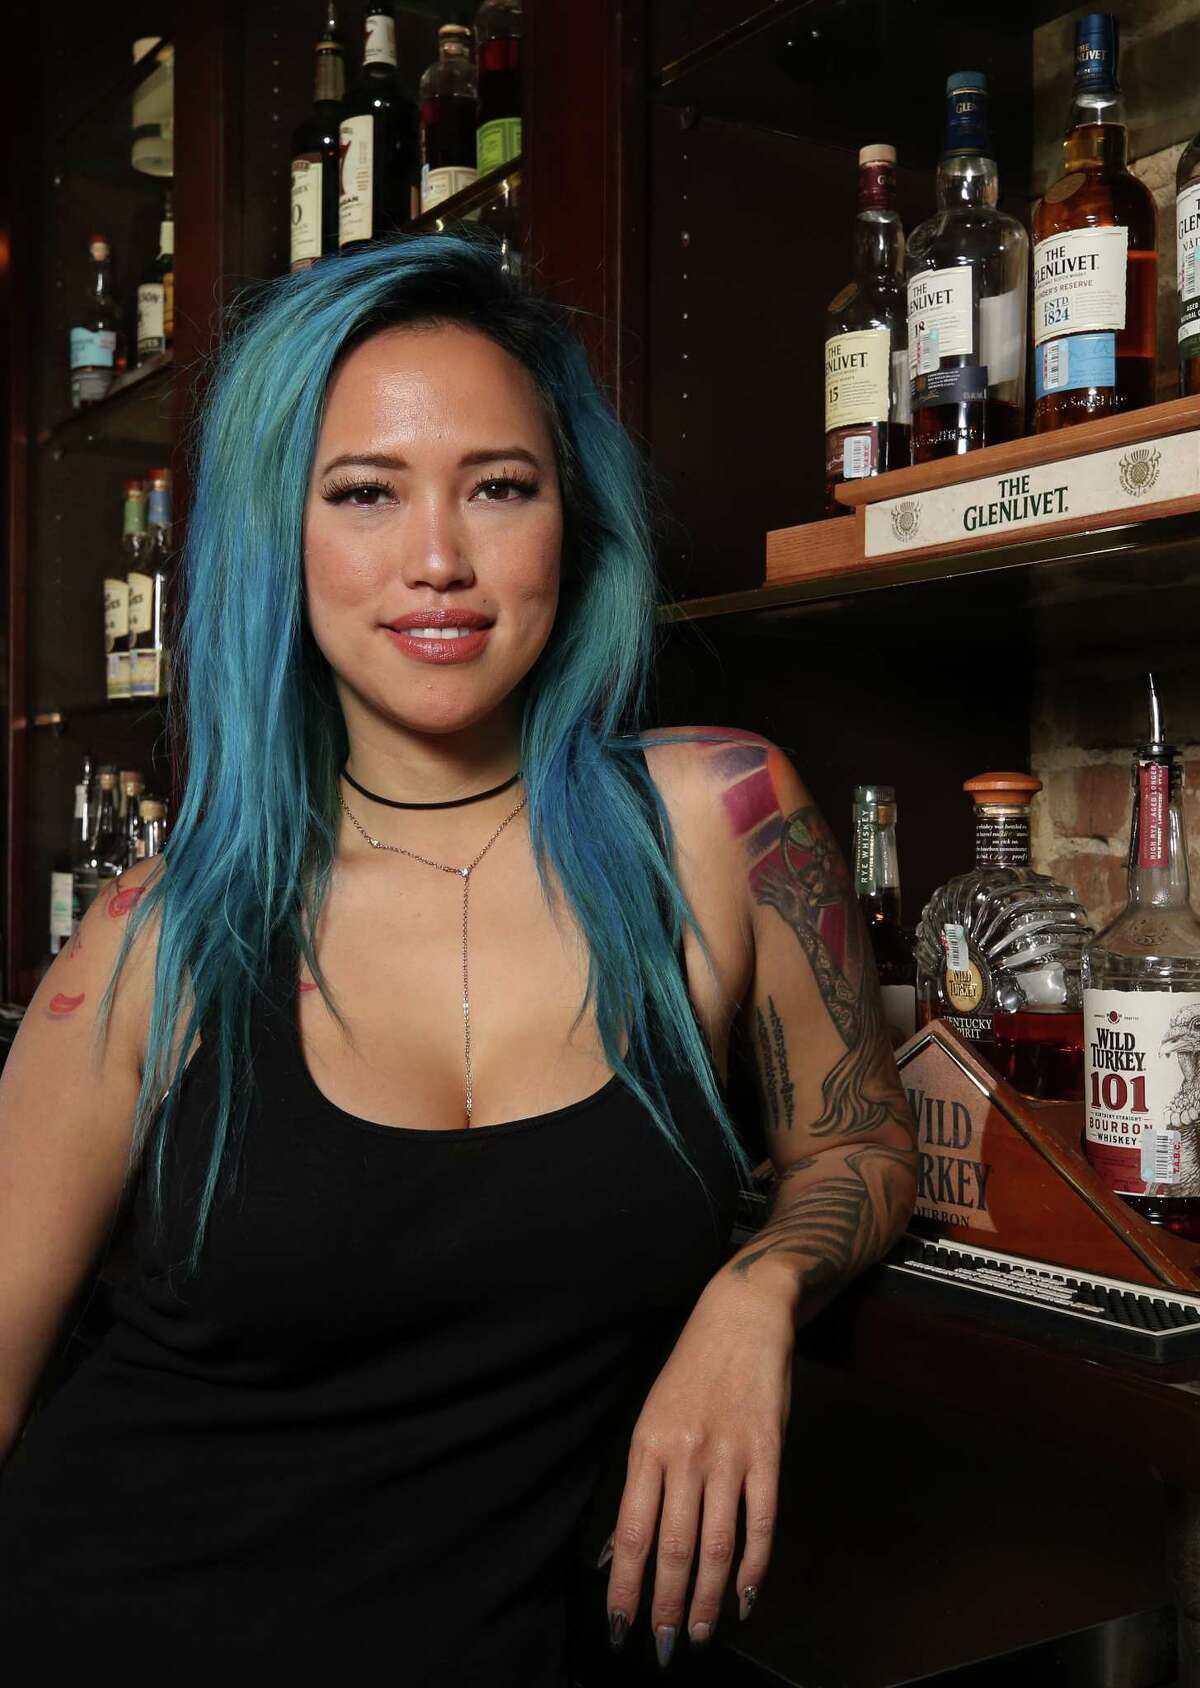 Shay McElroy's Irish Pub bartender Jeanette Do poses for a photograph Tuesday, Nov. 28, 2017, in Houston. ( Godofredo A. Vasquez / Houston Chronicle )